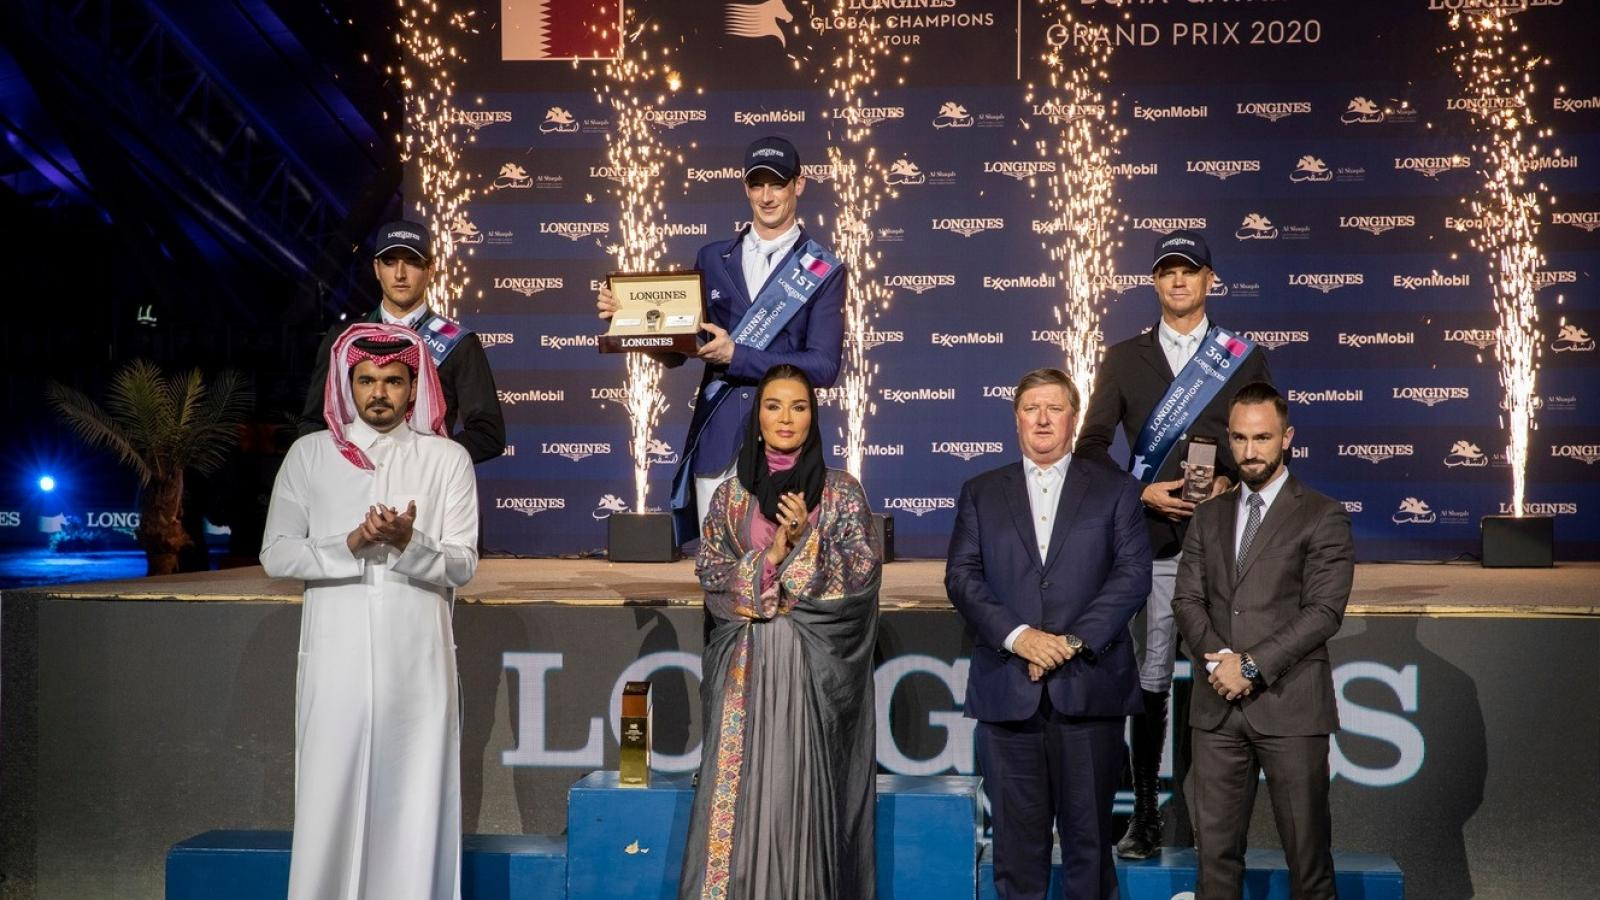 Desseur claims victory at season-opening LGCT Grand Prix of Doha